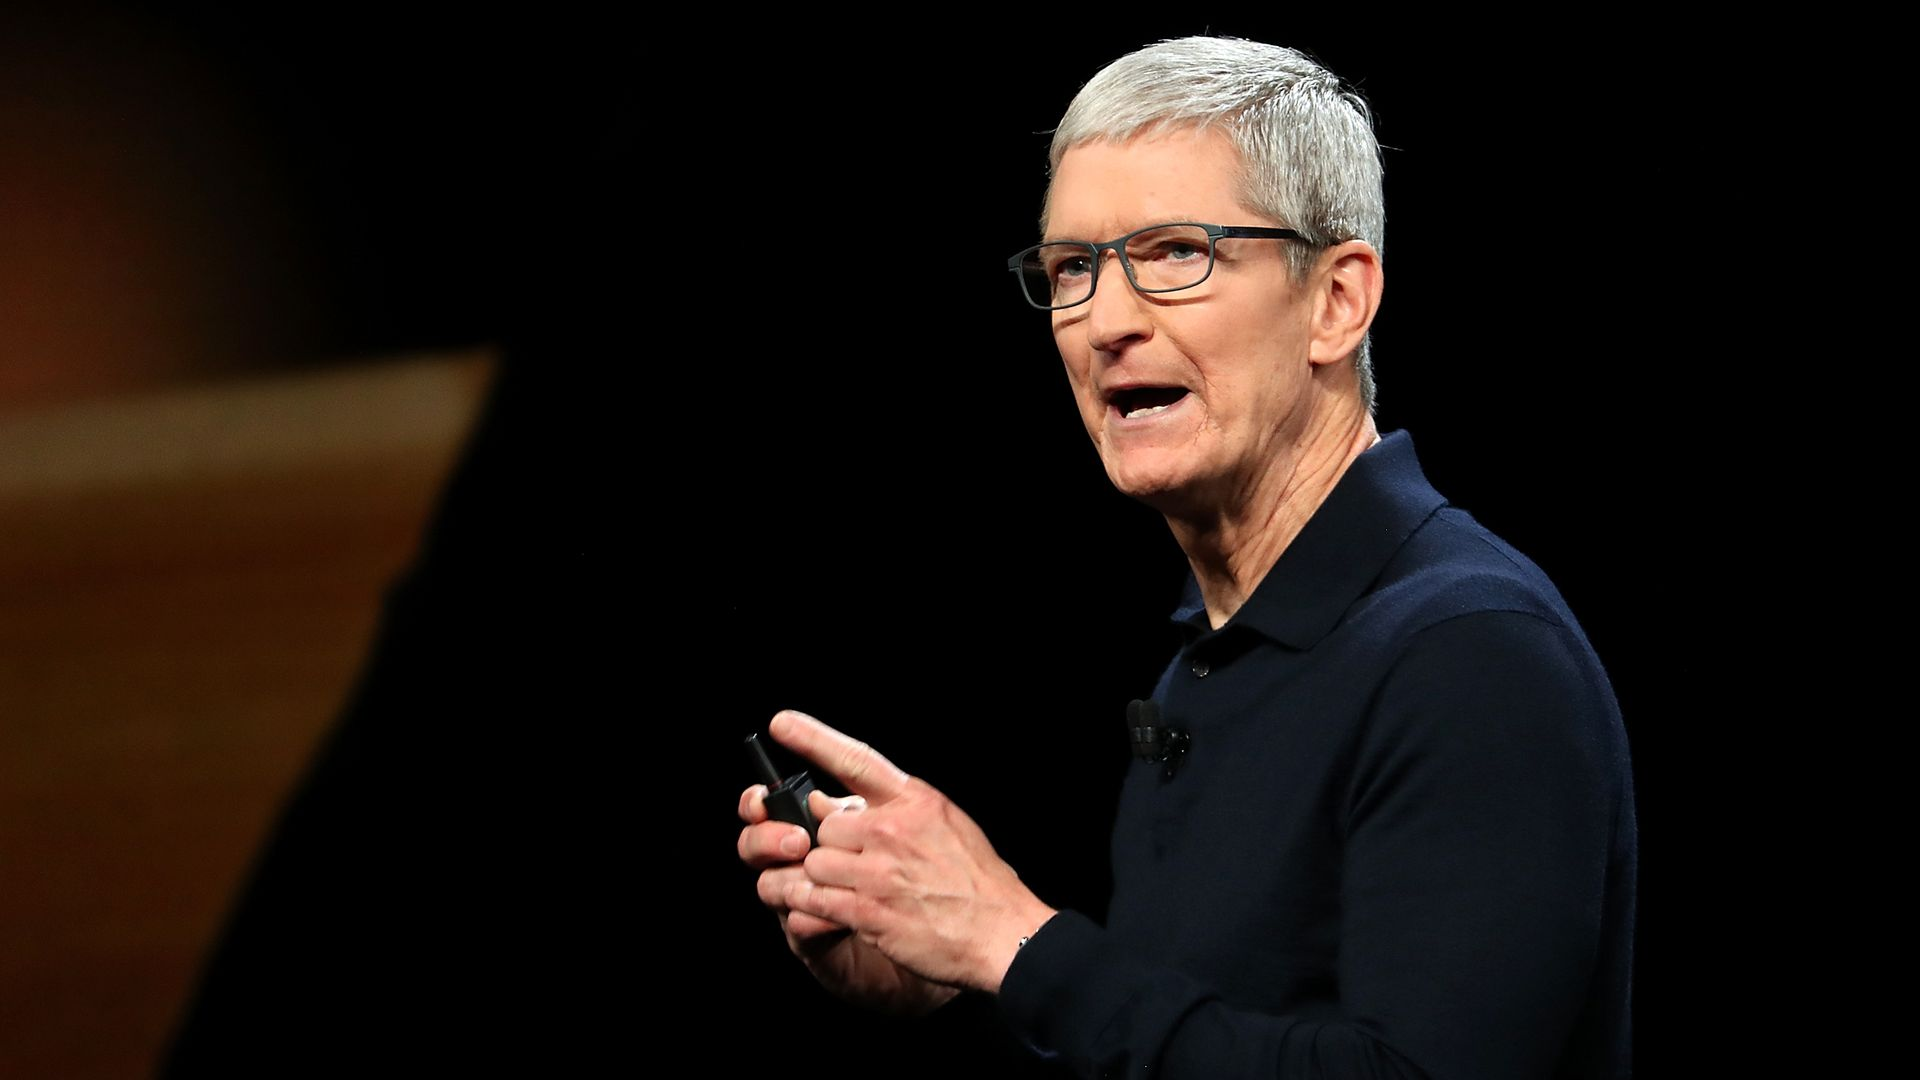 Tim Cook on stage at an event.